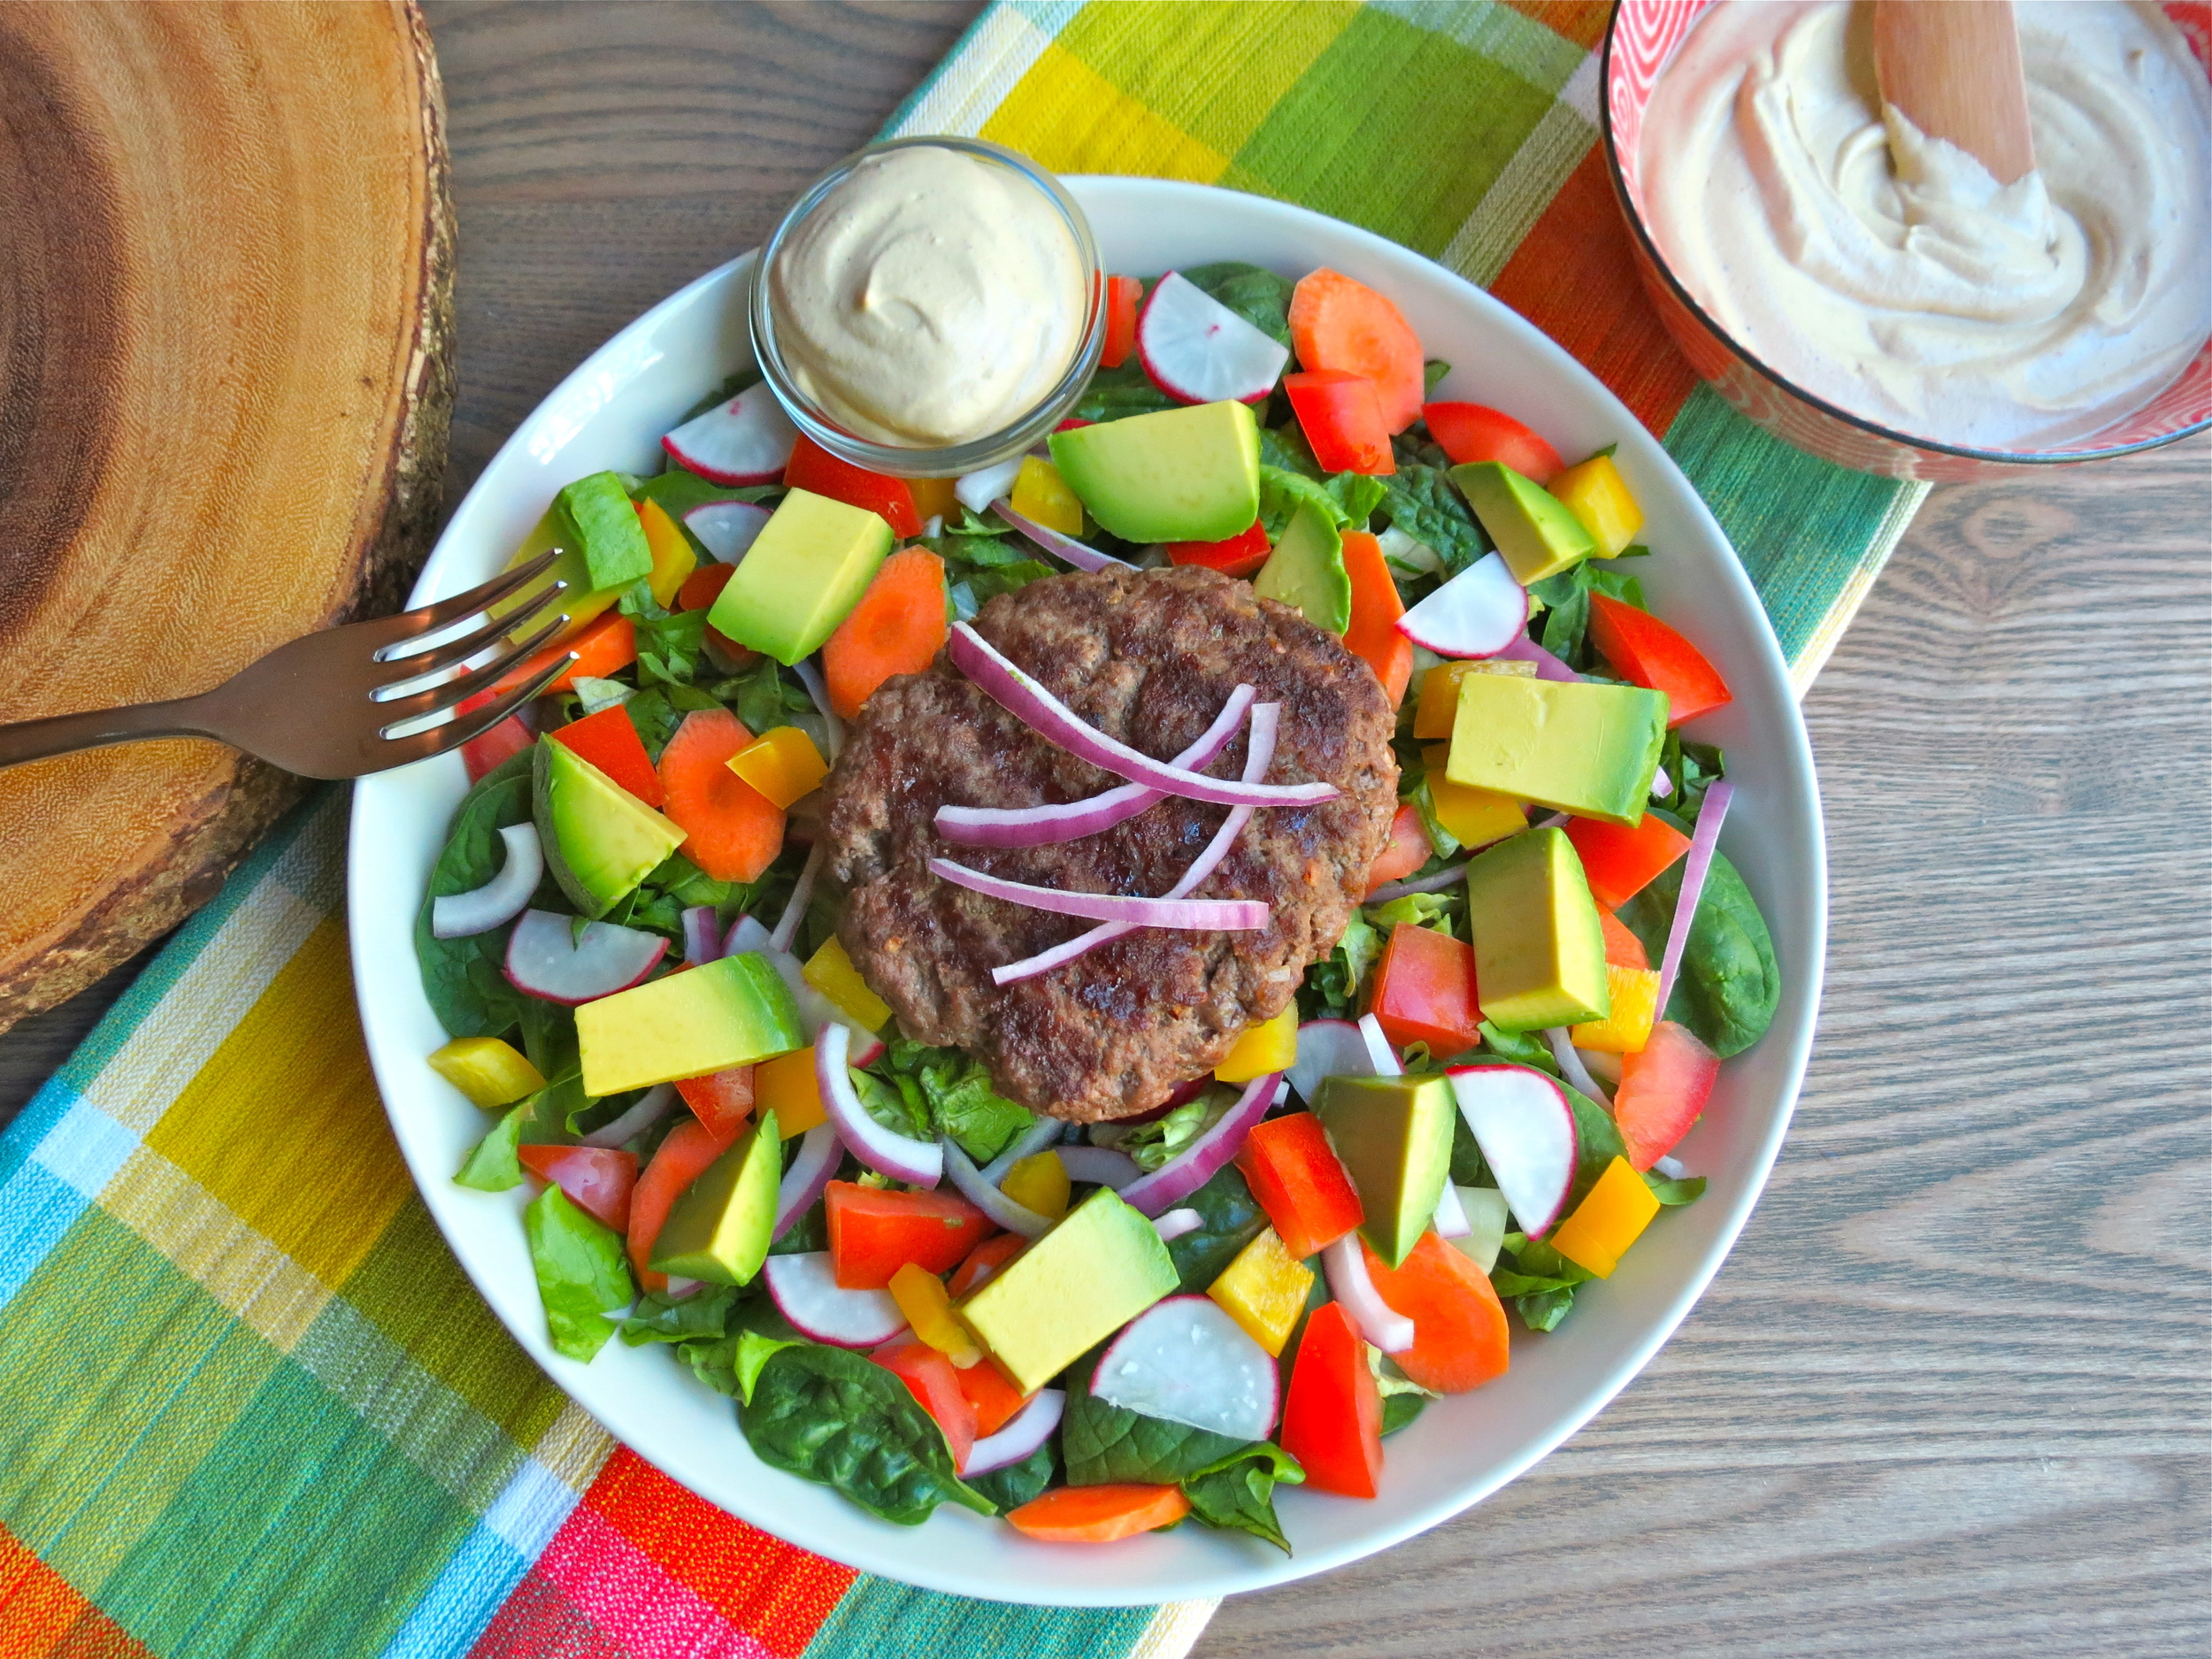 Grass-fed burger salad with Creamy Chipotle Cashew Cream.